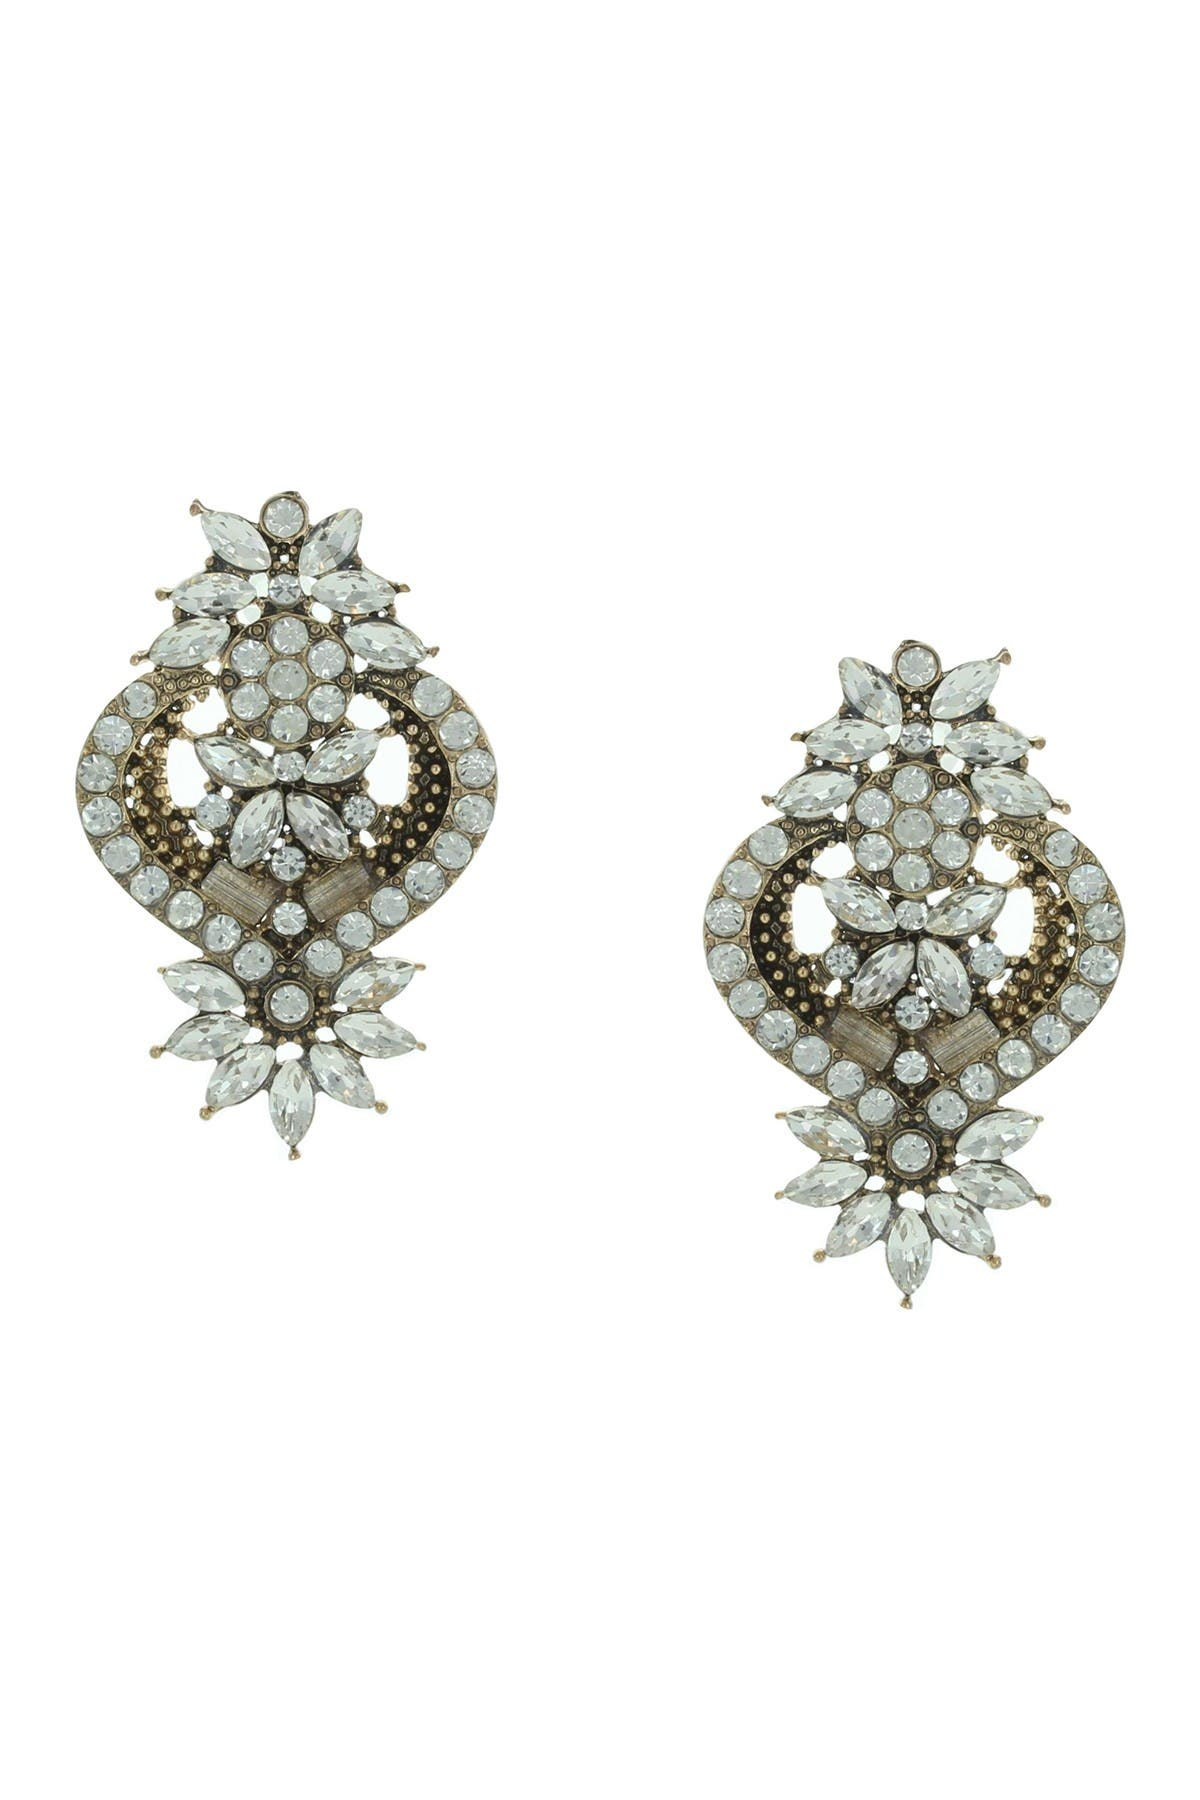 Image of Olivia Welles Blake Statement Earrings